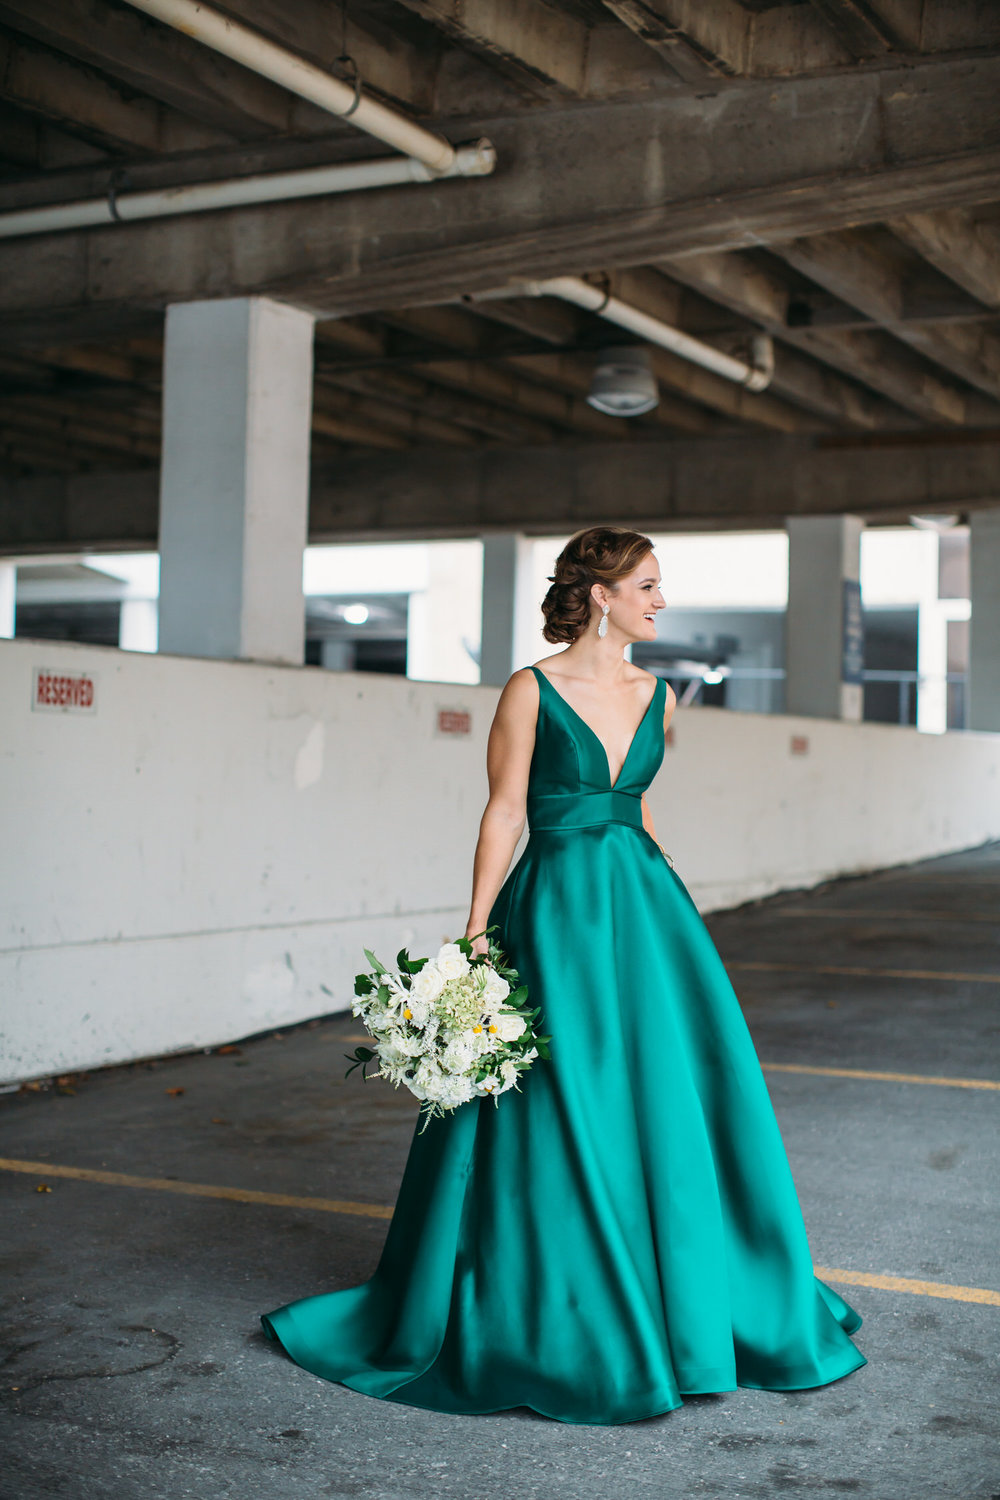 Green wedding dress. Seattle wedding photographer